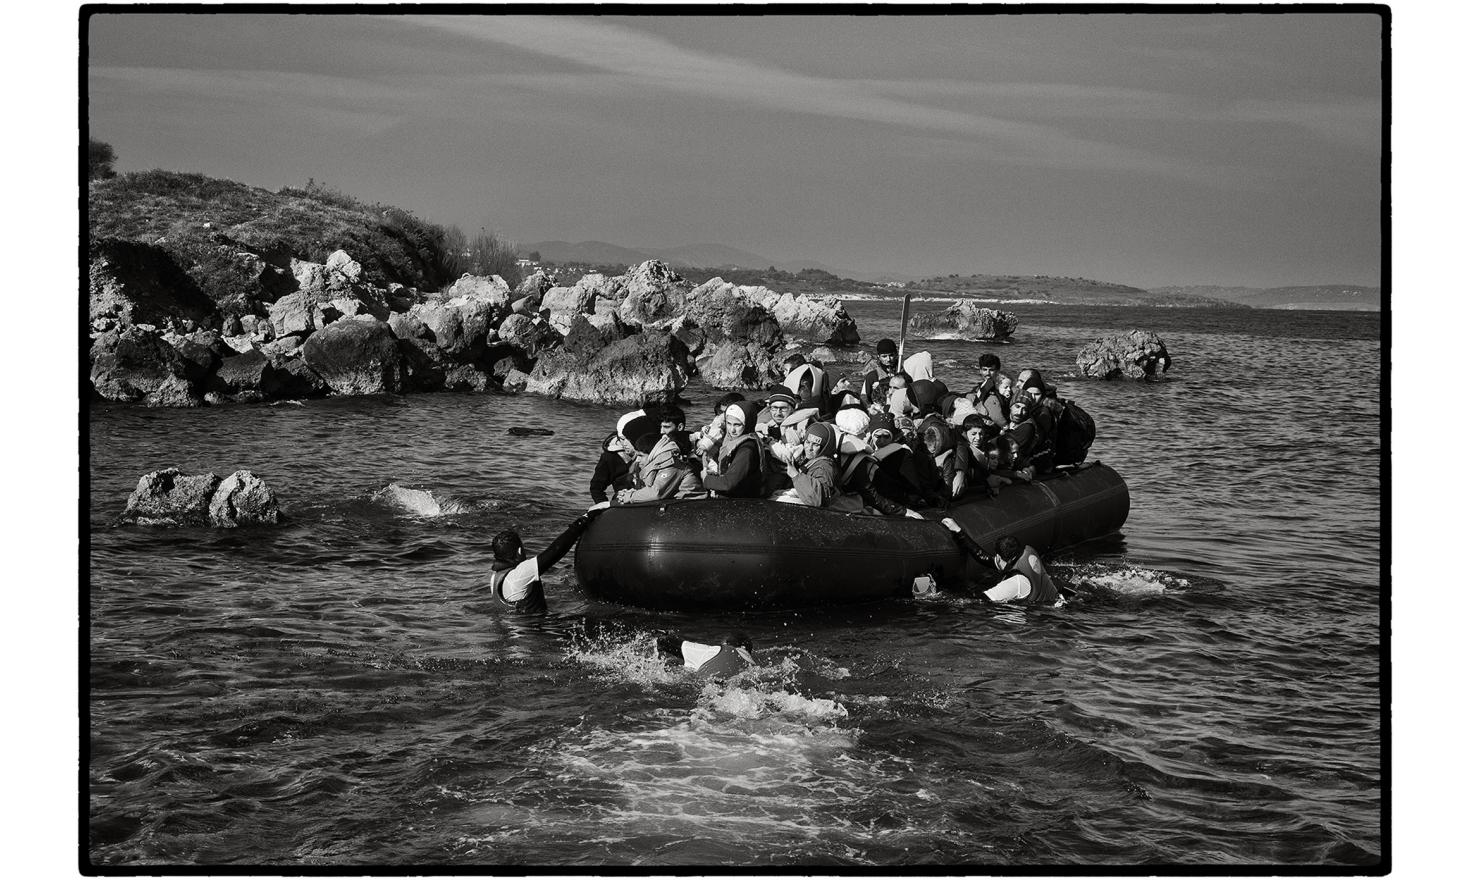 Lesbos, Greece. The Turkish authorities estimate that almost 850 000 migrants, mainly Syrians, Afghans and Iraqis, tried to cross to Greece from the Turkish coast in 2015. Hundreds of people arrive on the beaches of the Greek islands every day.